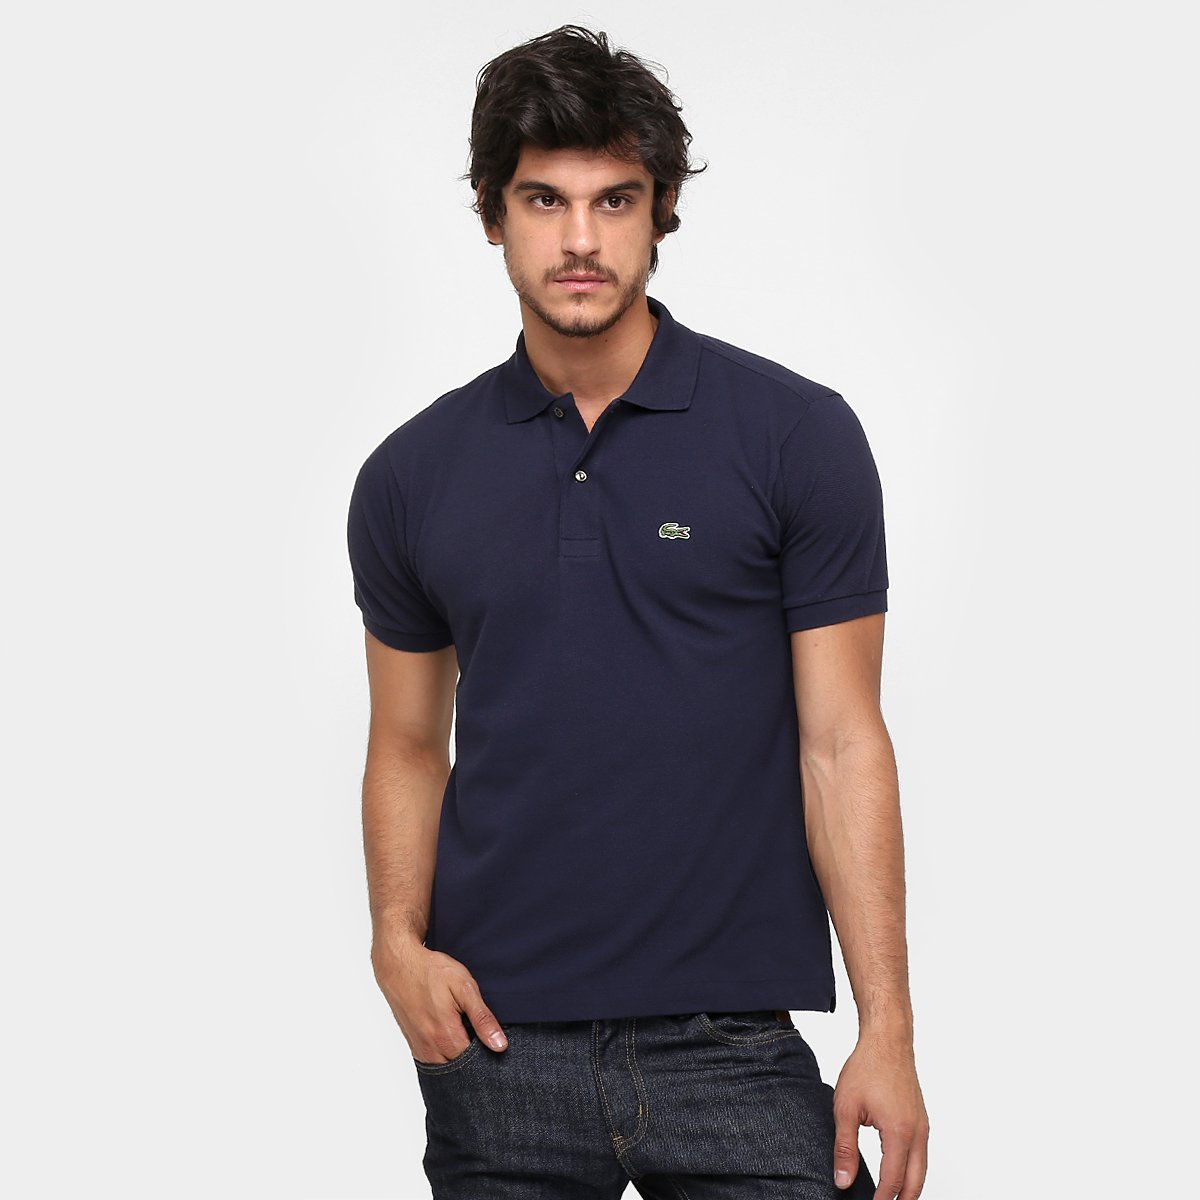 2ff1ae4d420 Camisa Polo Lacoste Original Fit Masculina